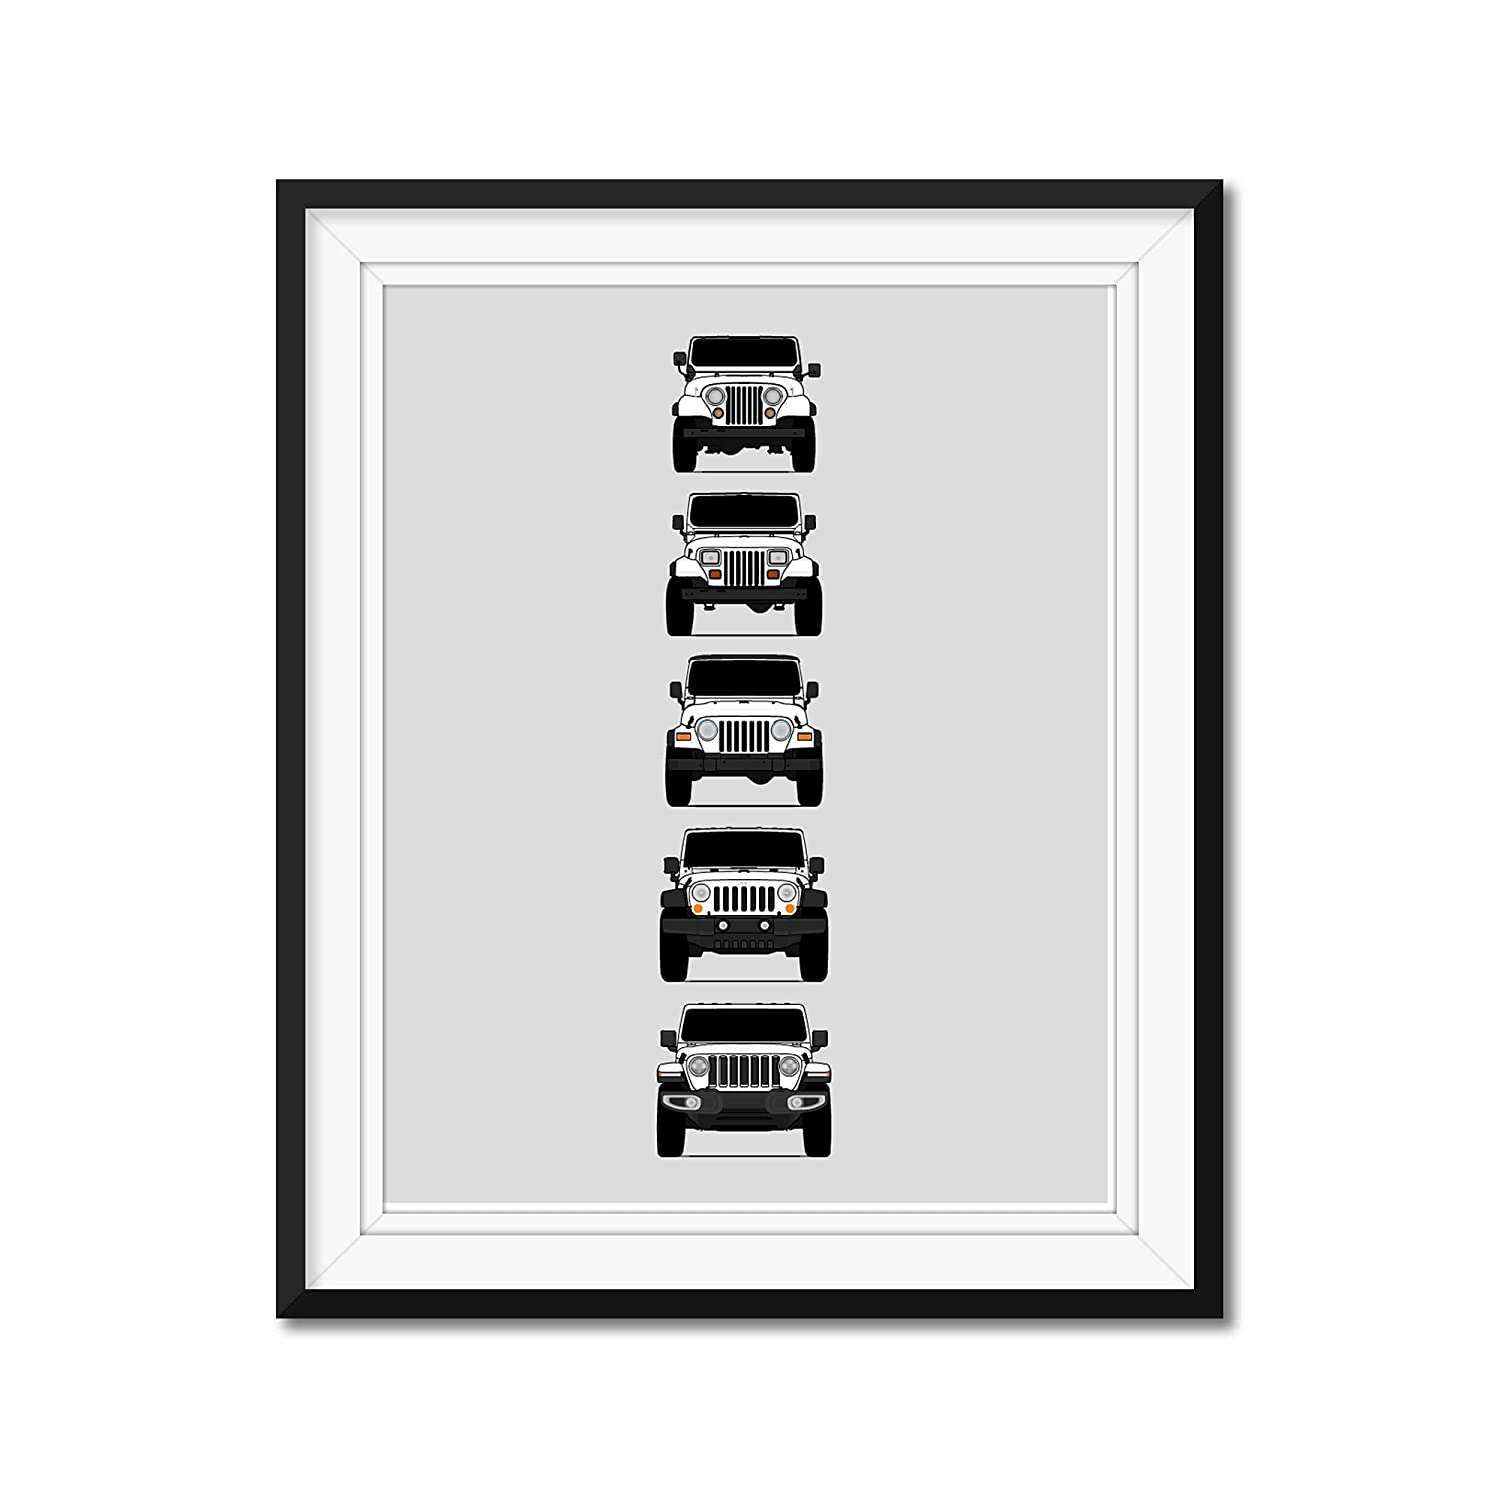 Jeep Wrangler Generations (CJ, YJ, TJ, JK, JL) Inspired Poster Print Wall Art of the History and Evolution of the Wrangler Generations